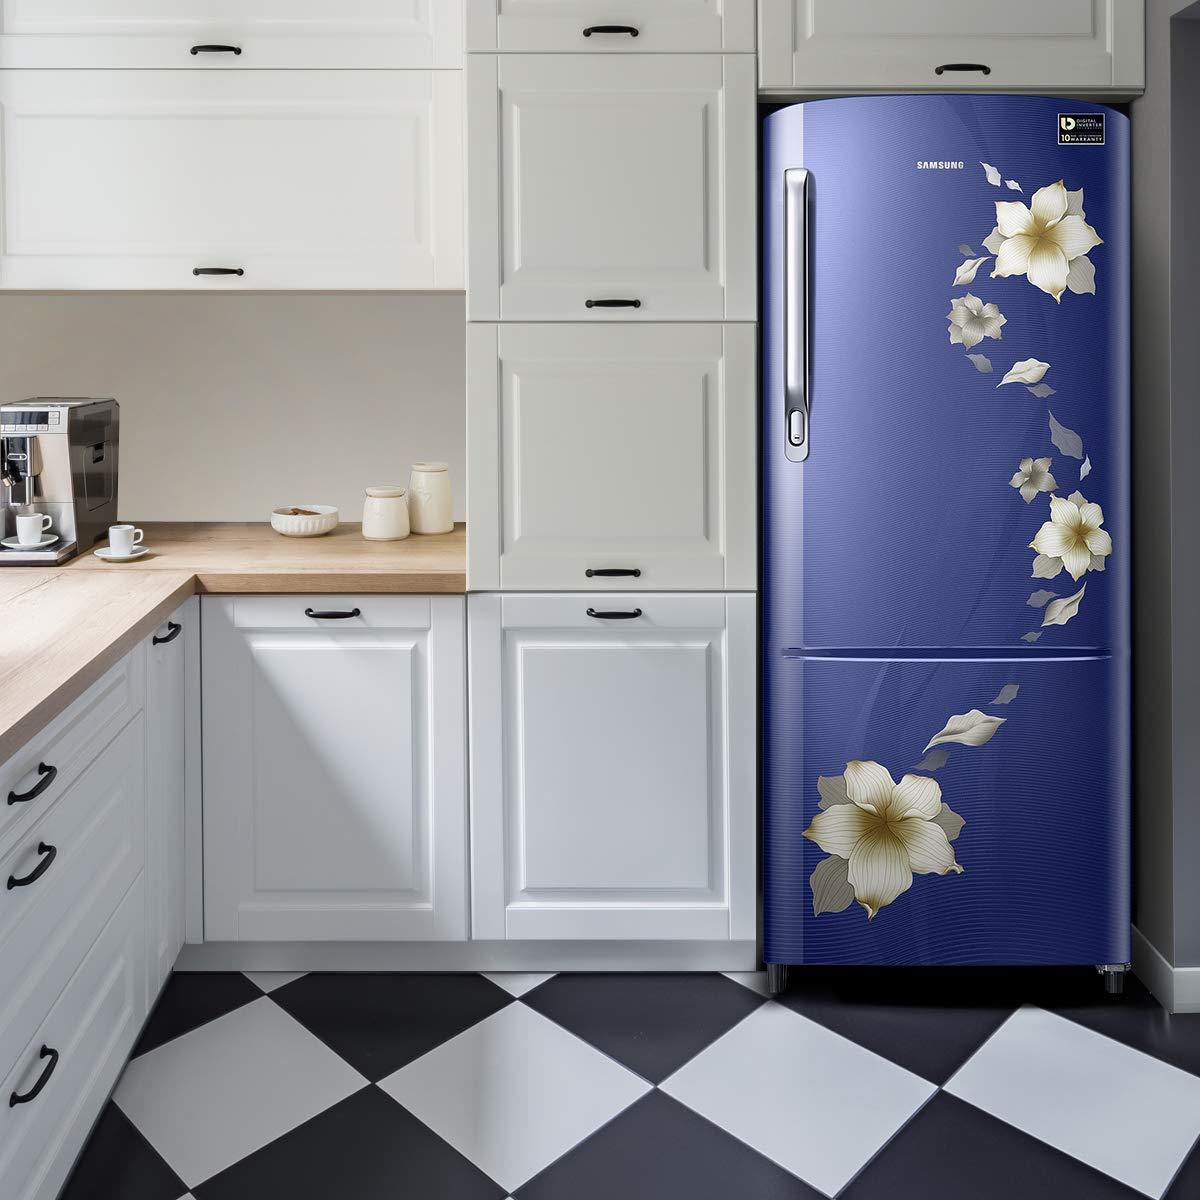 Samsung 192 L 3 Star ( 2019 ) Inverter Direct Cool Single Door Refrigerator (RR20M172ZU2/HL/RR20M272ZU2/NL, Star ( 2019 ) flower blue)